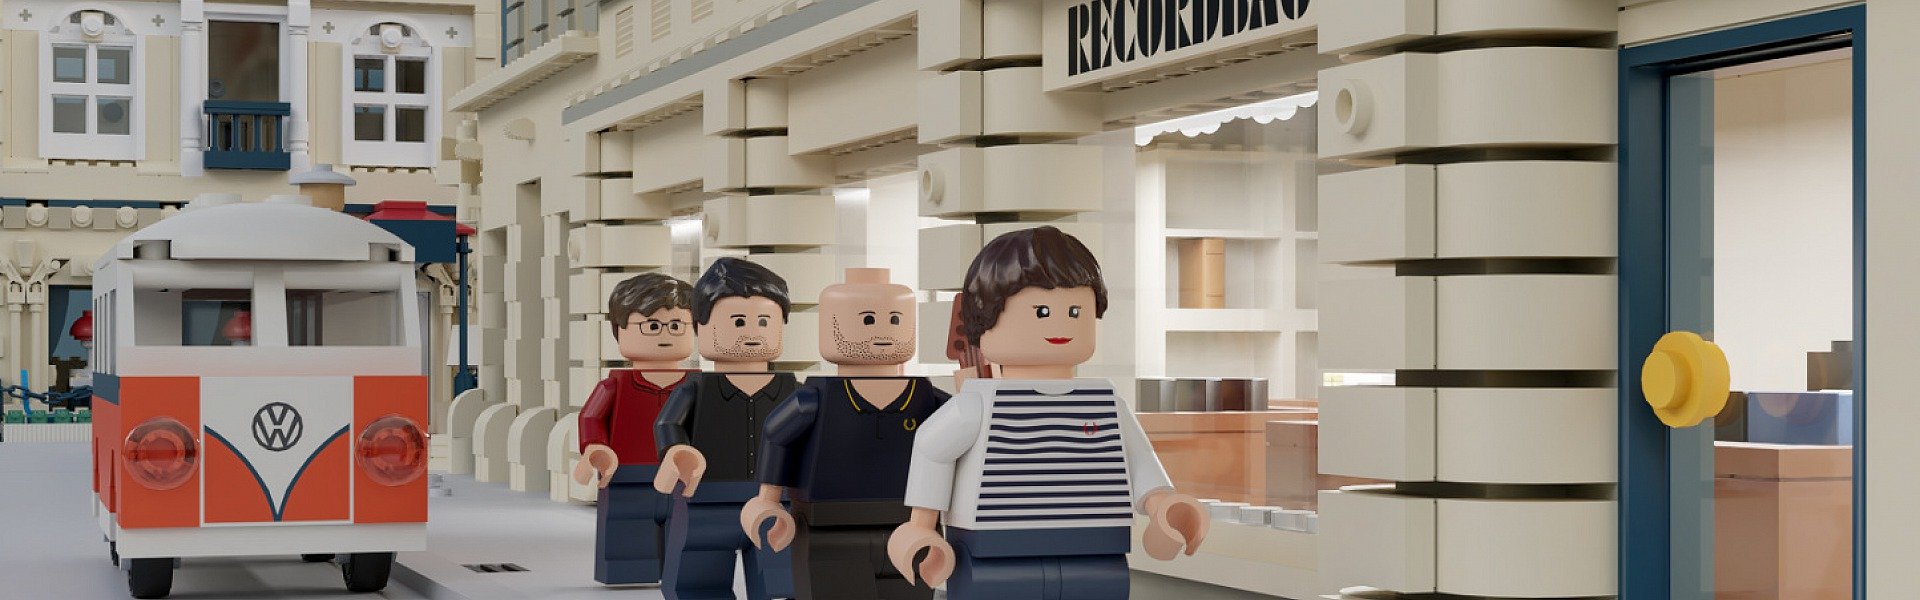 3D-Animation in Lego Look: Deltagram for Wohnzimmer Records